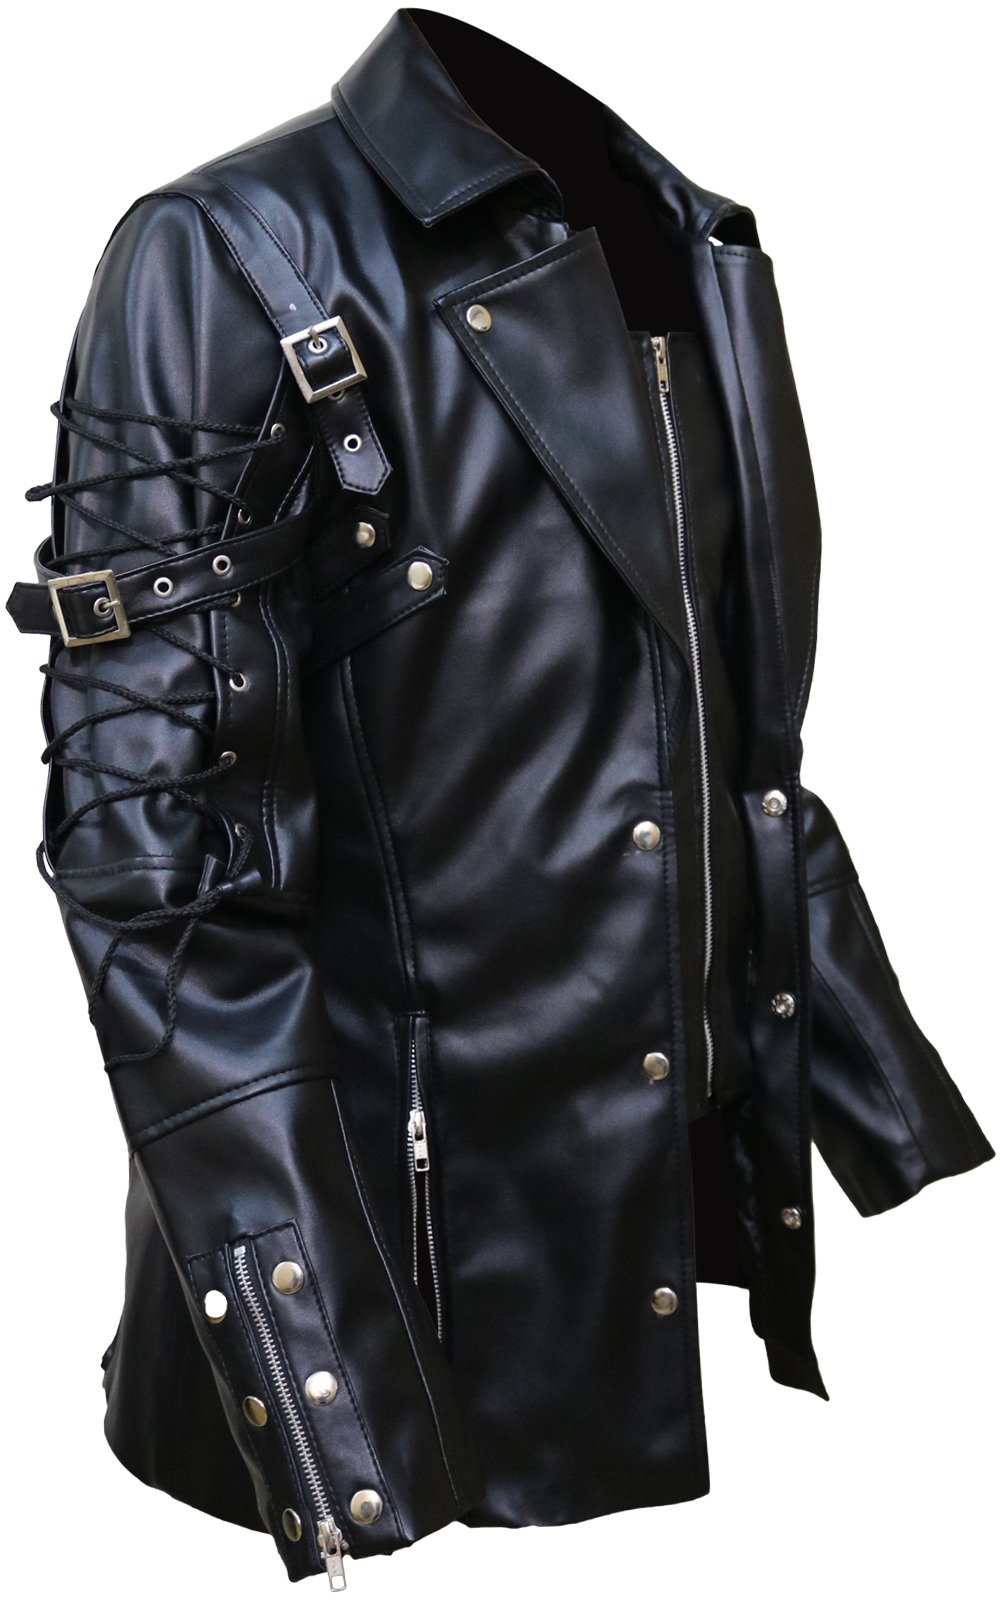 Punk Rave Poison Black Jacket Mens Faux Leather Goth Steampunk Military Coat, XXS-3XL 4